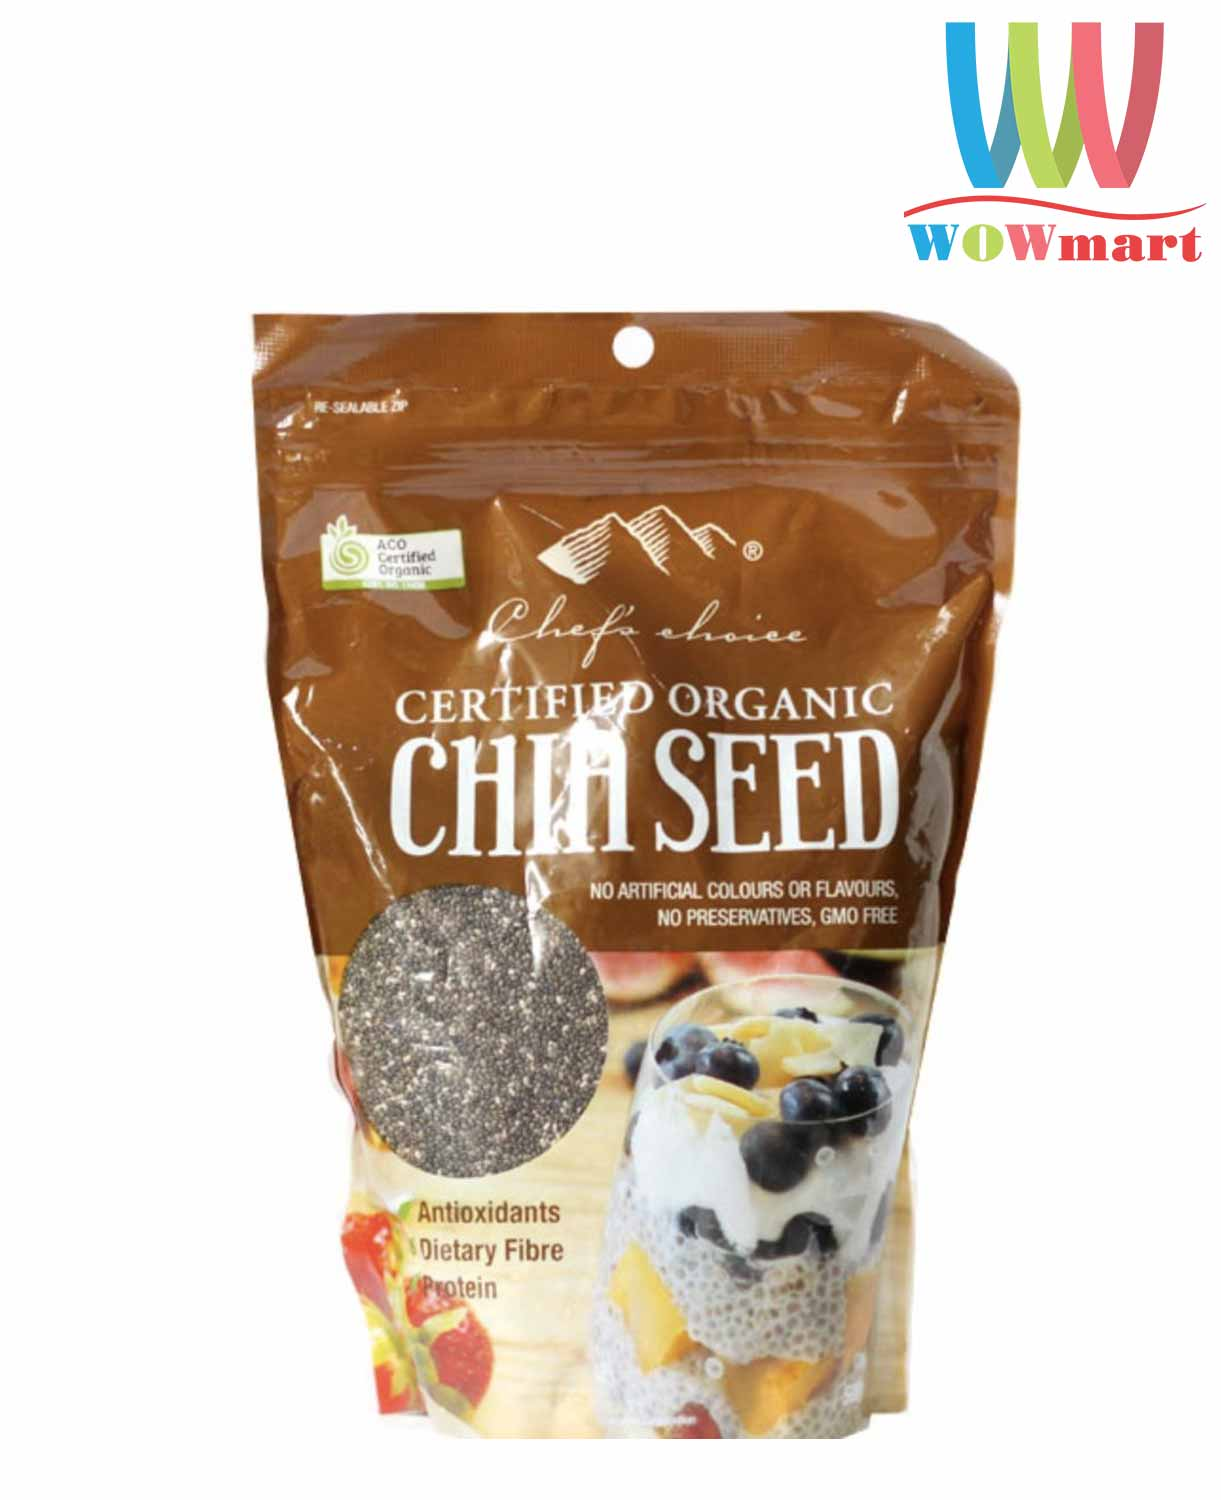 hat-chia-seed-chefs-choice-certified-organic-1kg